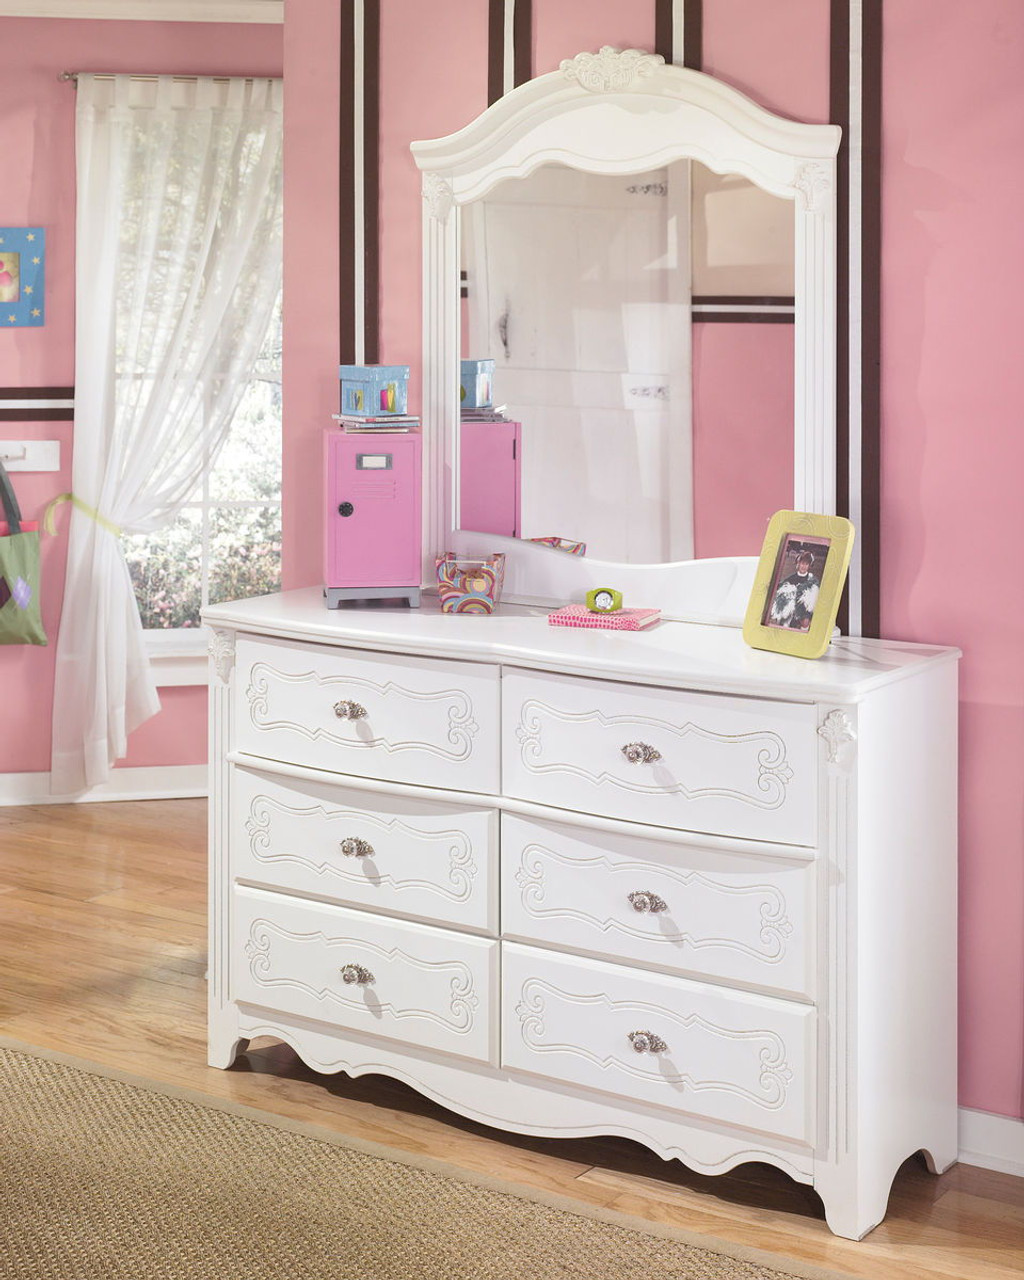 The Exquisite White Dresser Mirror Available At Hometown